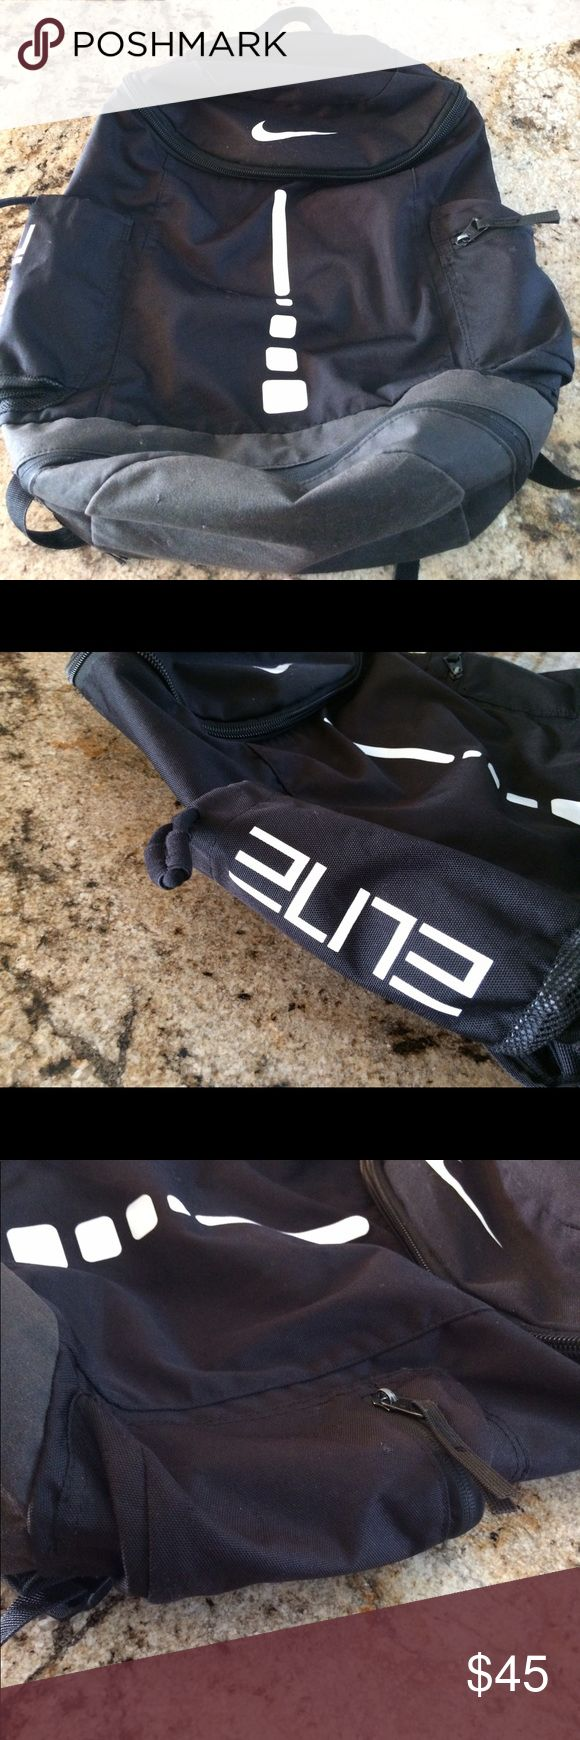 Black Nike Elite backpack Great condition Nike Bags Backpacks